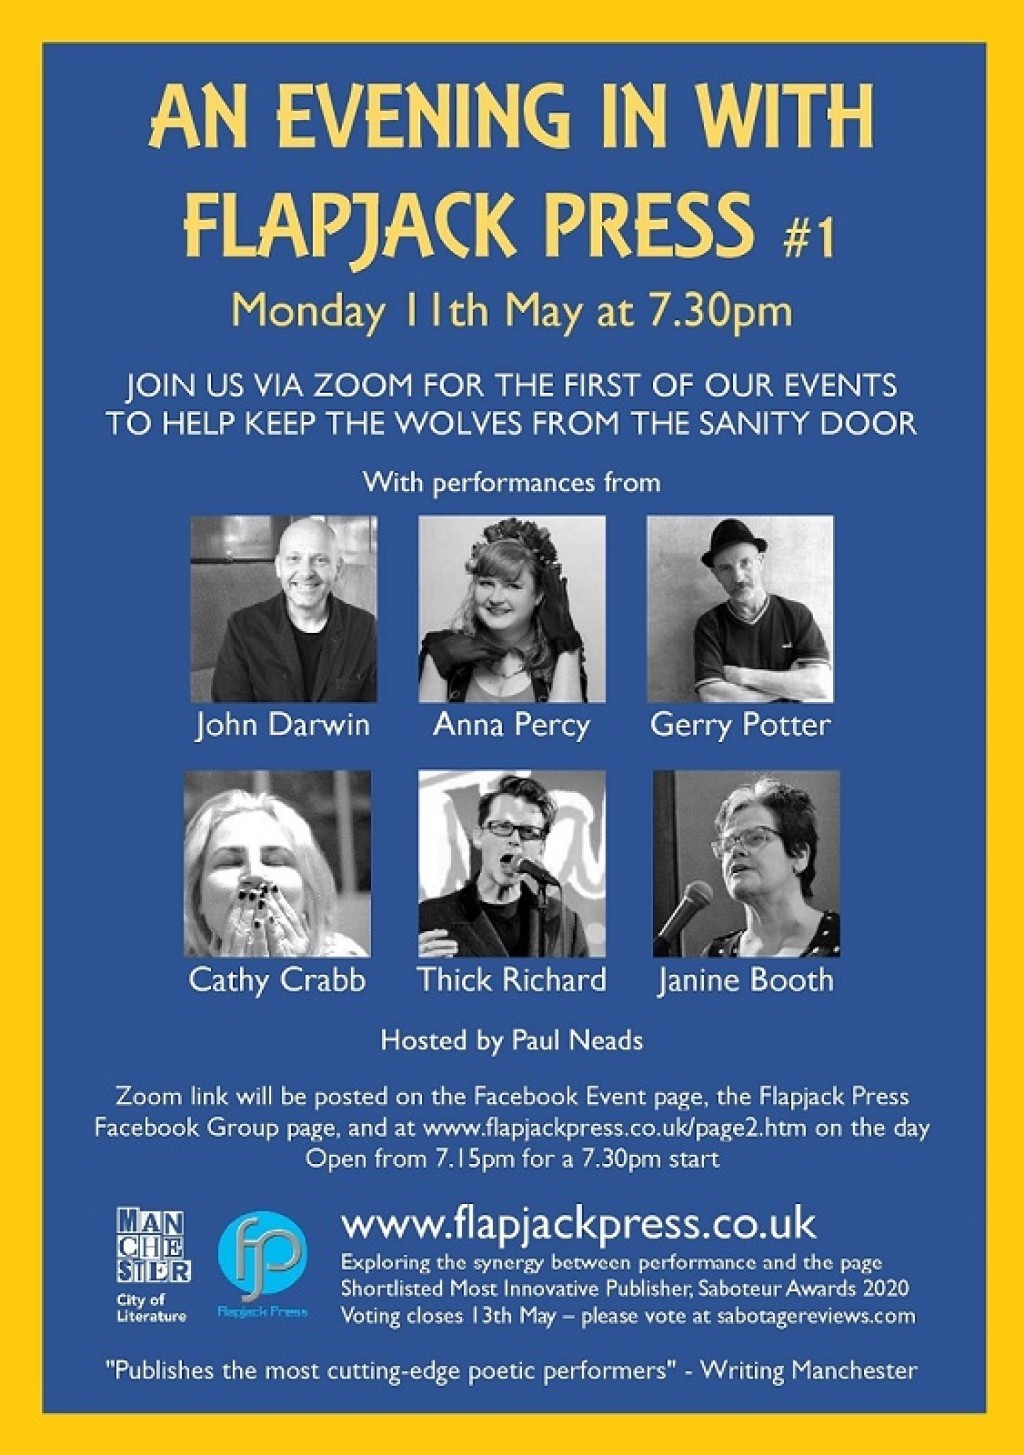 An Evening In with Flapjack Press #1